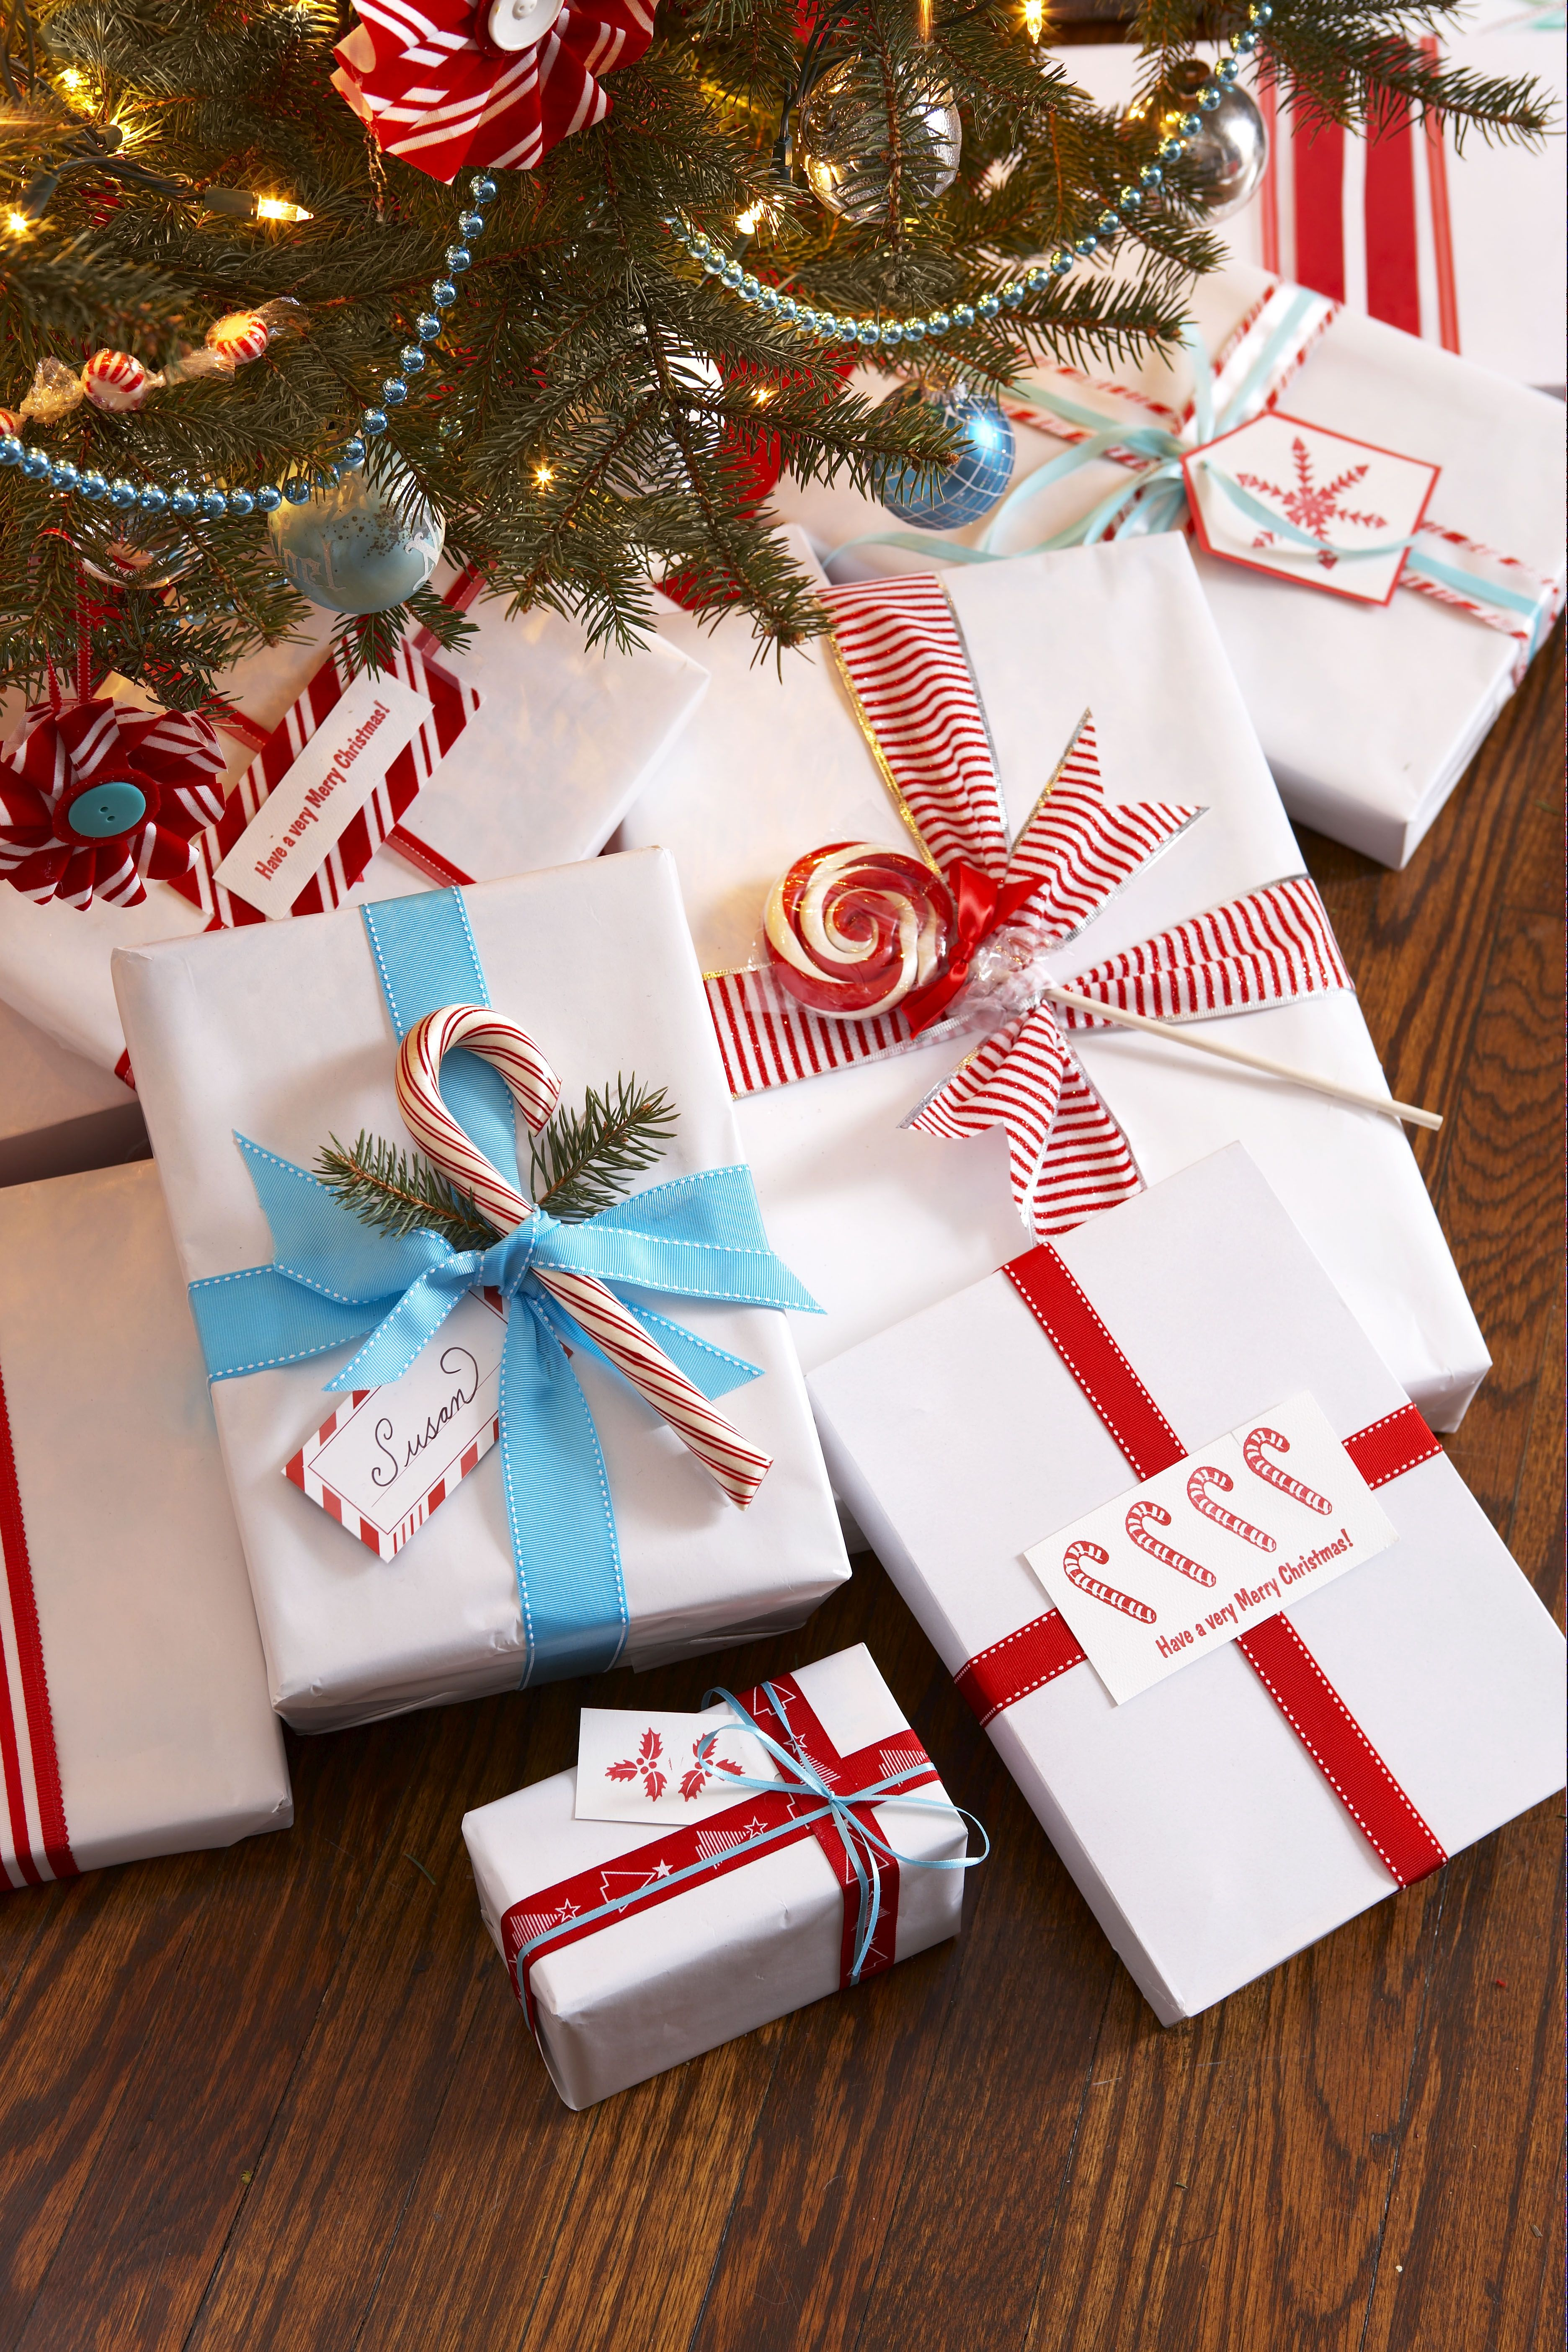 7 Best Christmas Party Themes - Ideas for a Holiday Party